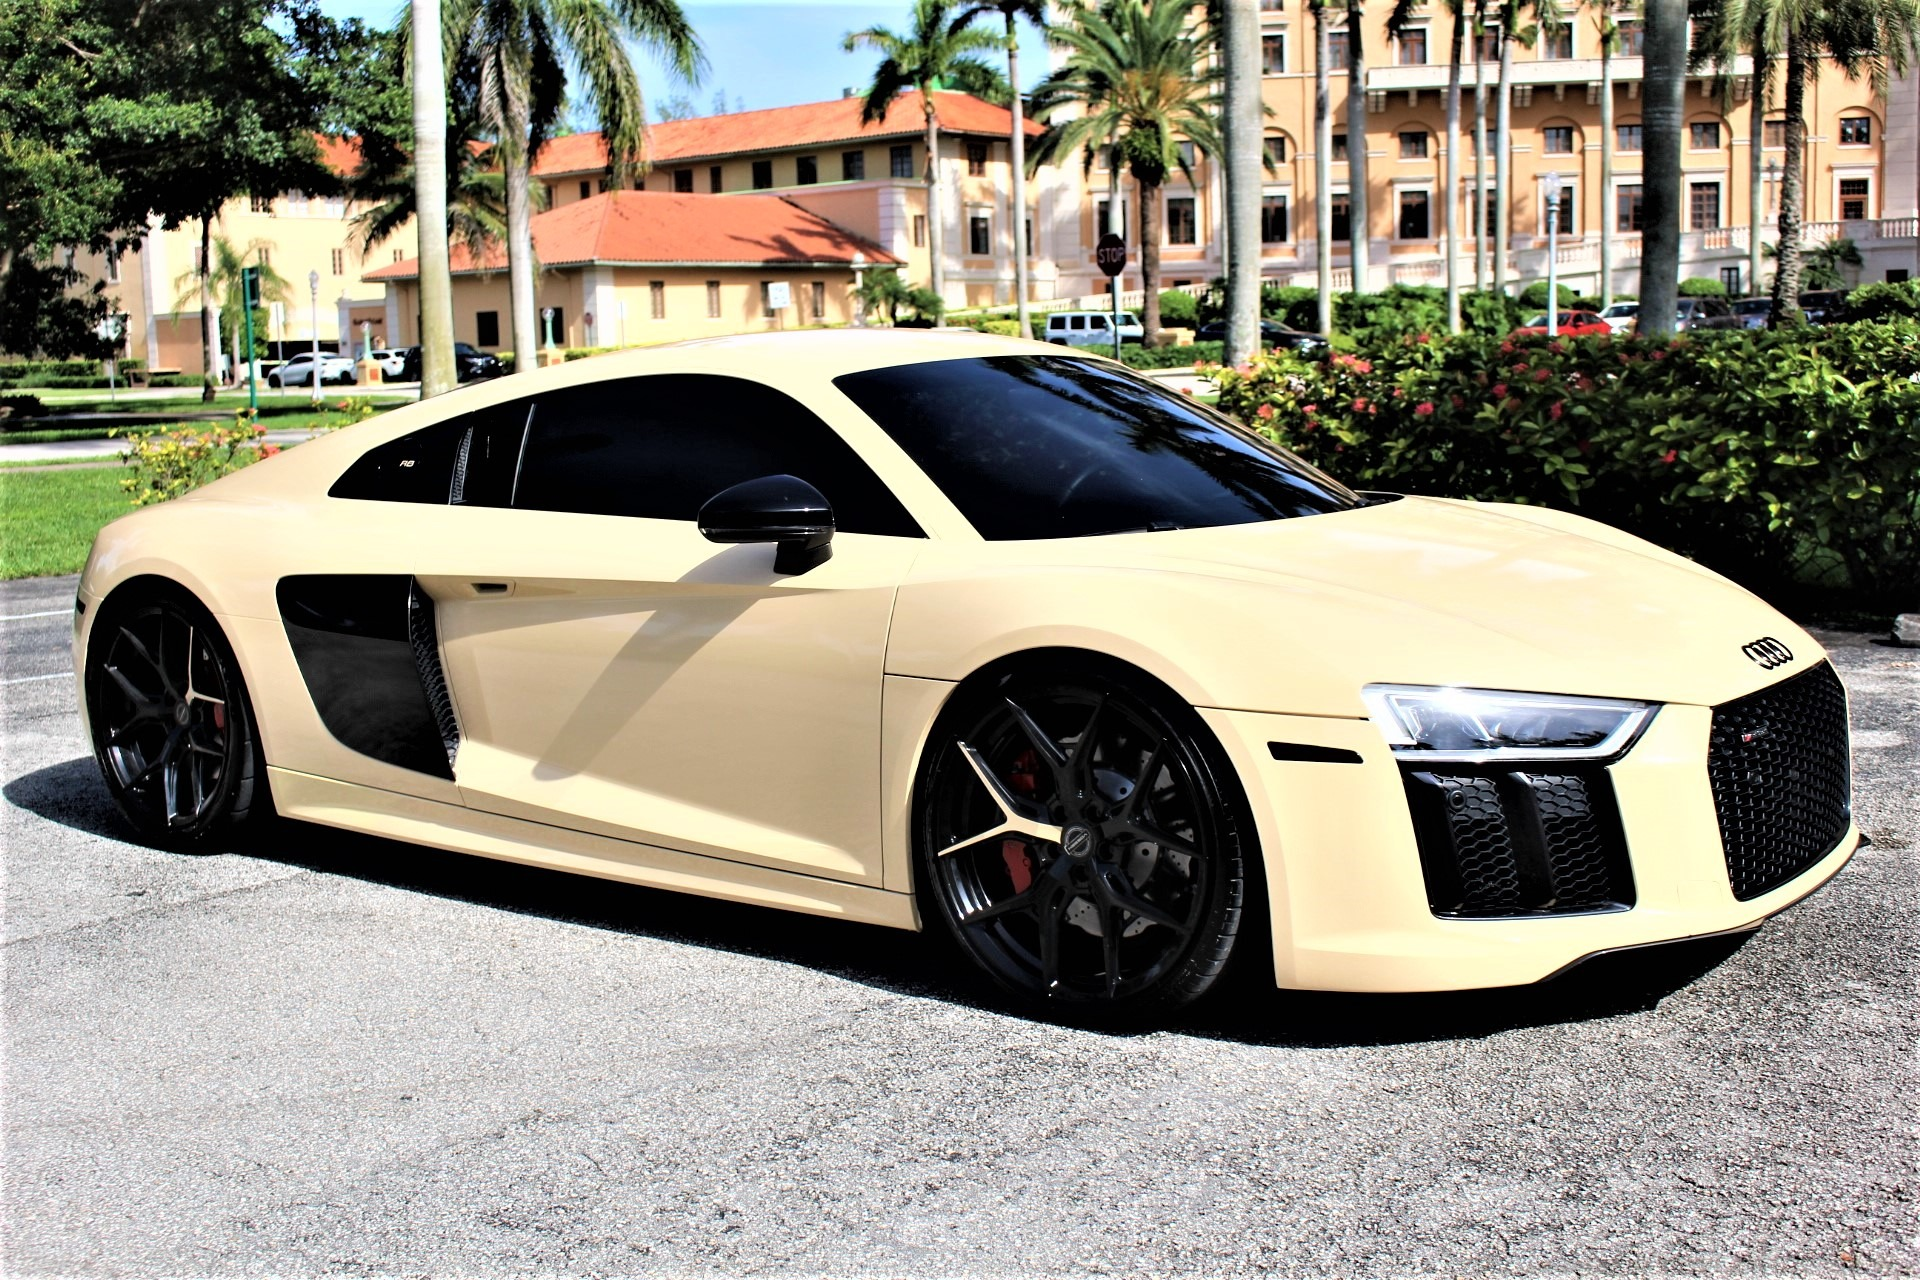 Used 2018 Audi R8 5.2 V10 RWS Twin Turbo for sale $189,850 at The Gables Sports Cars in Miami FL 33146 2